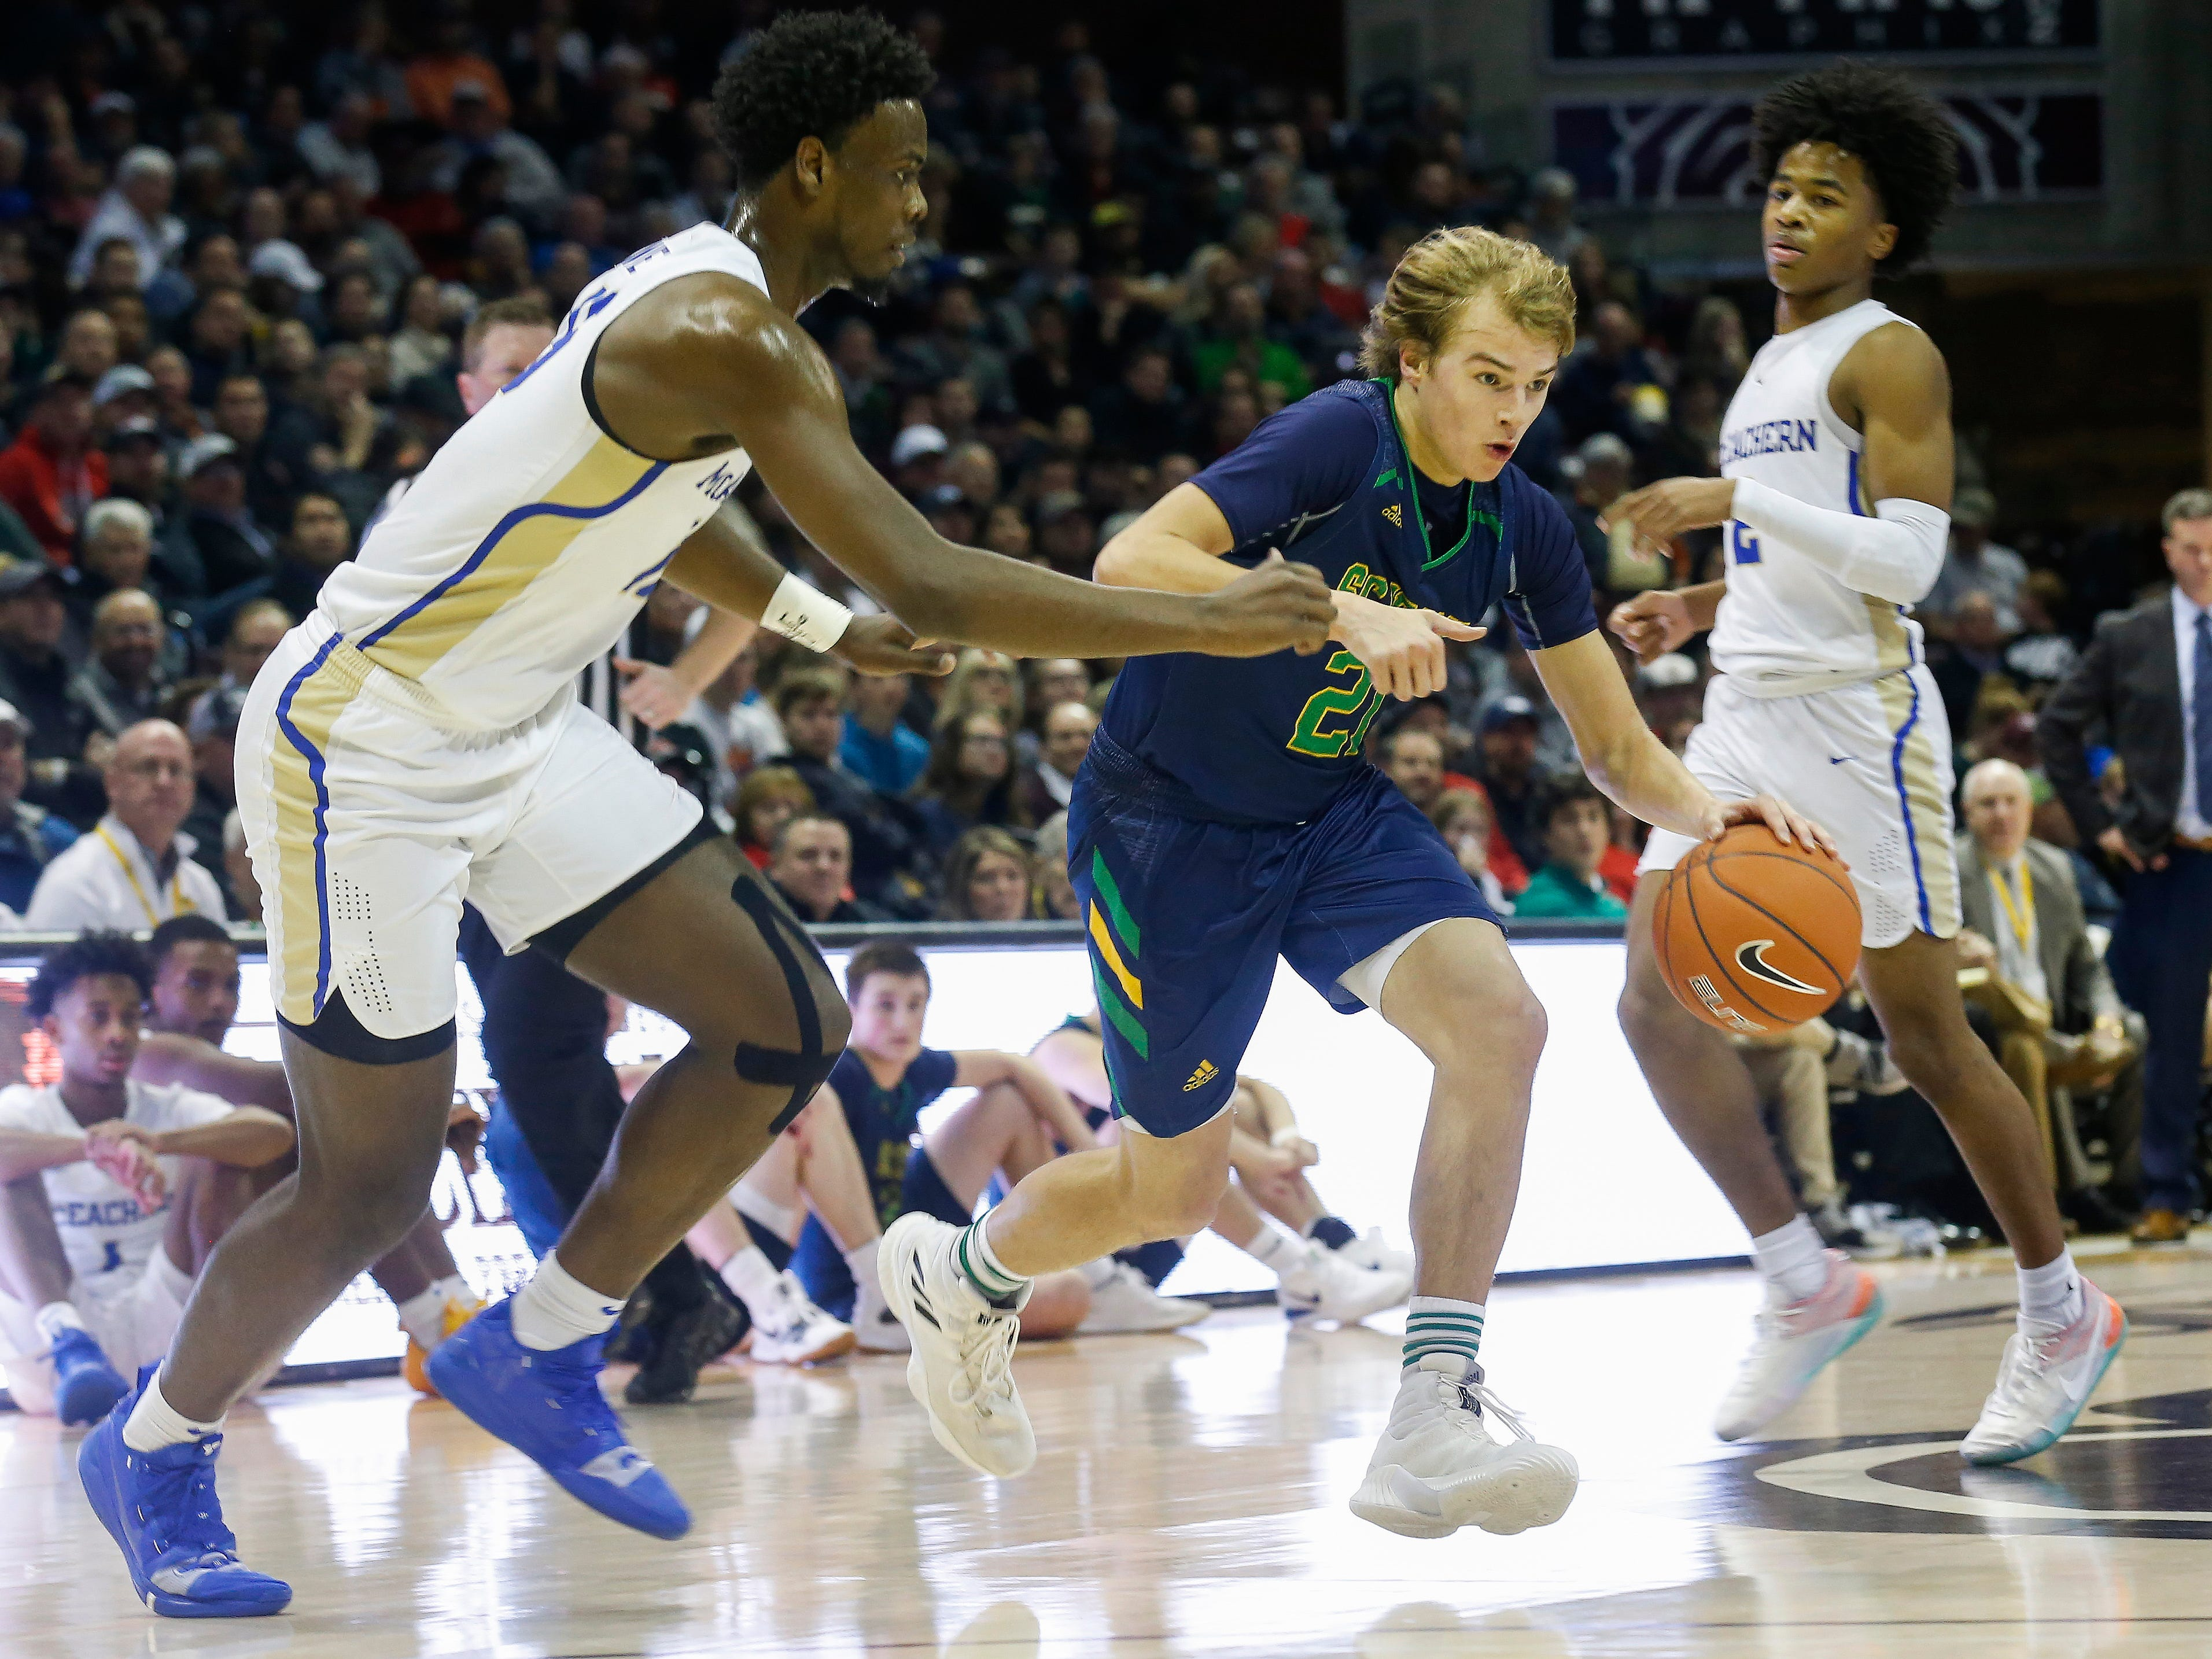 Charlie O'Reilly, of Springfield Catholic, brings the ball down the court the Irish's  game against McEachern at the Bass Pro Shops Tournament of Champions at JQH Arena on Thursday, Jan. 17, 2019.